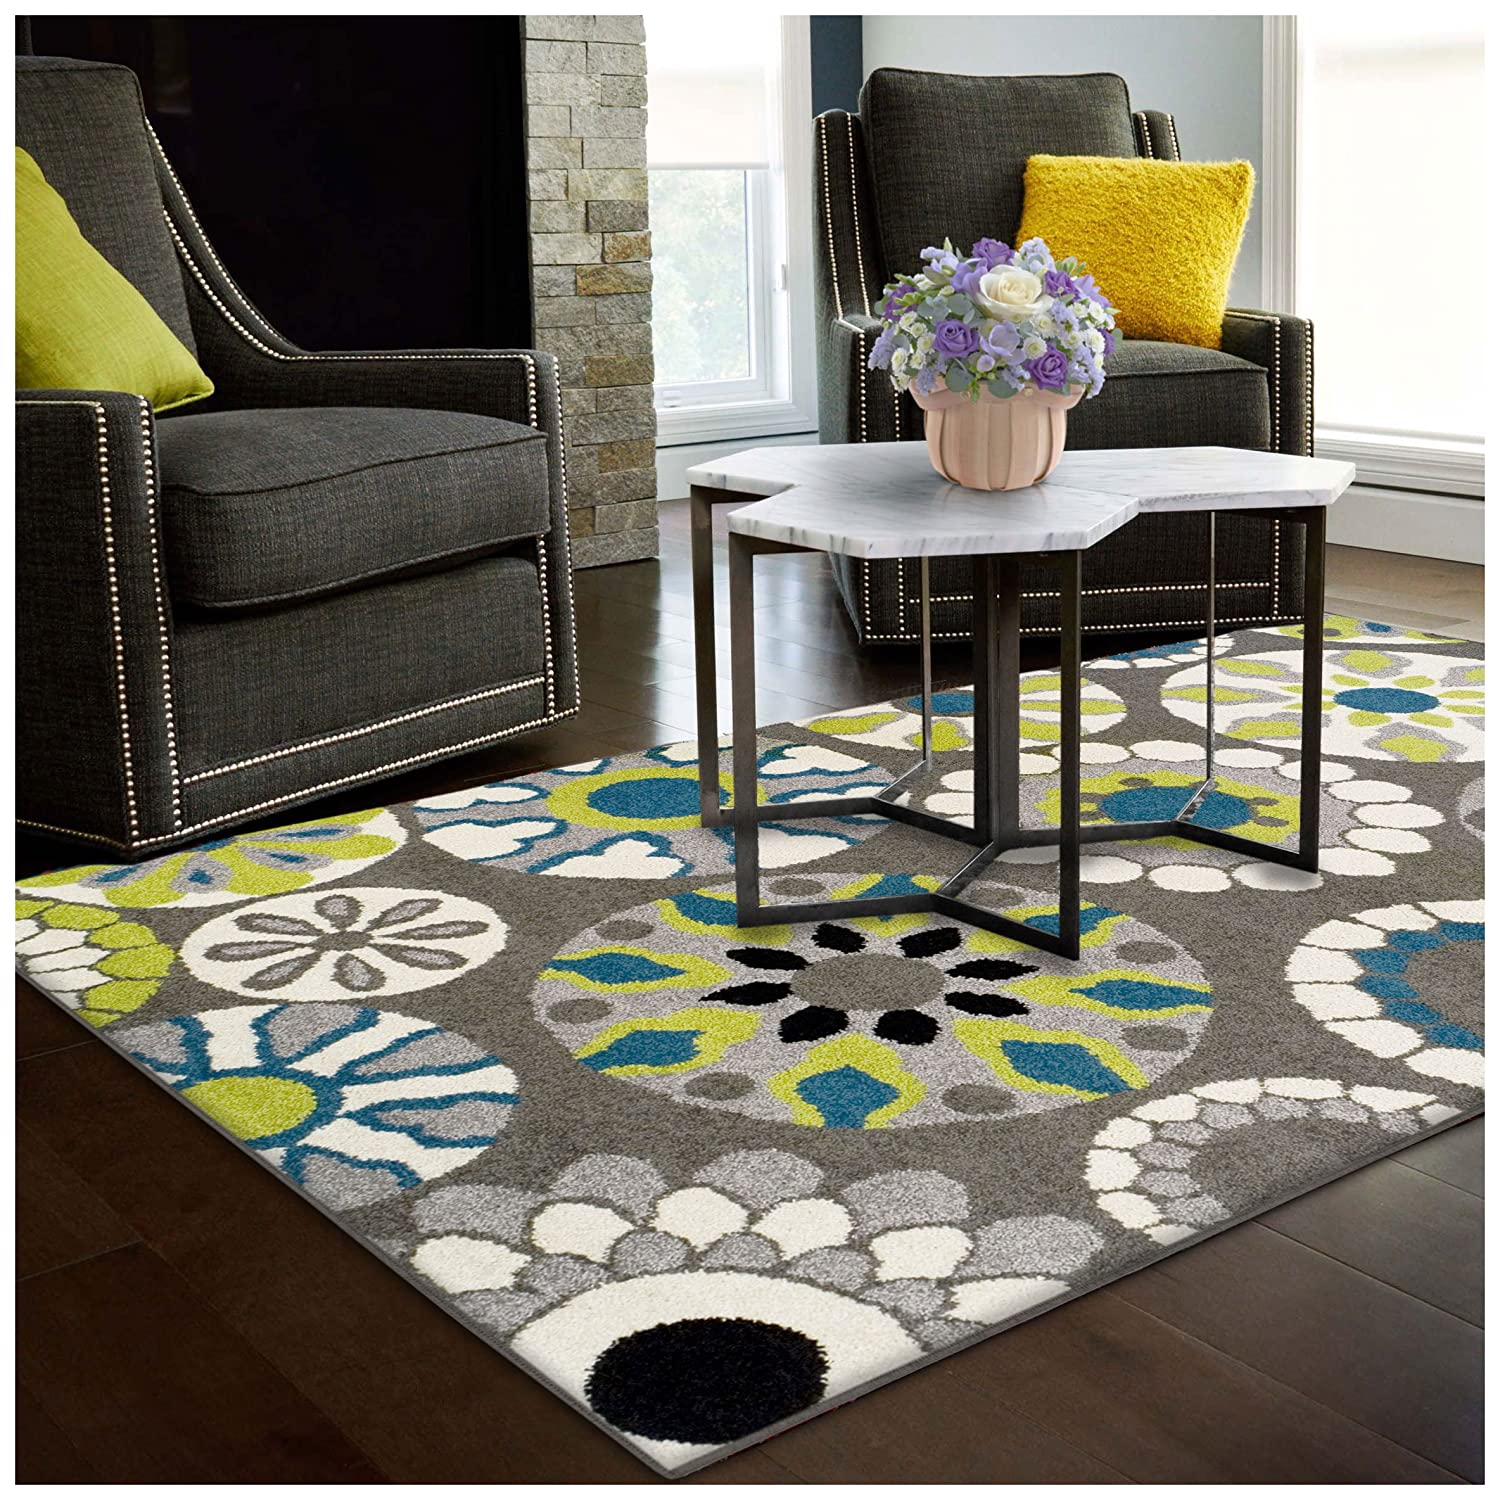 Superior Medallion Collection Area Rug, 6mm Pile Height with Jute Backing, Affordable Contemporary Rugs, Beautiful and Colorful Medallion Pattern - 2'7 x 8' Runner, Black, Grey, Blue, and Light Green 2.6x8RUG-MEDALLION